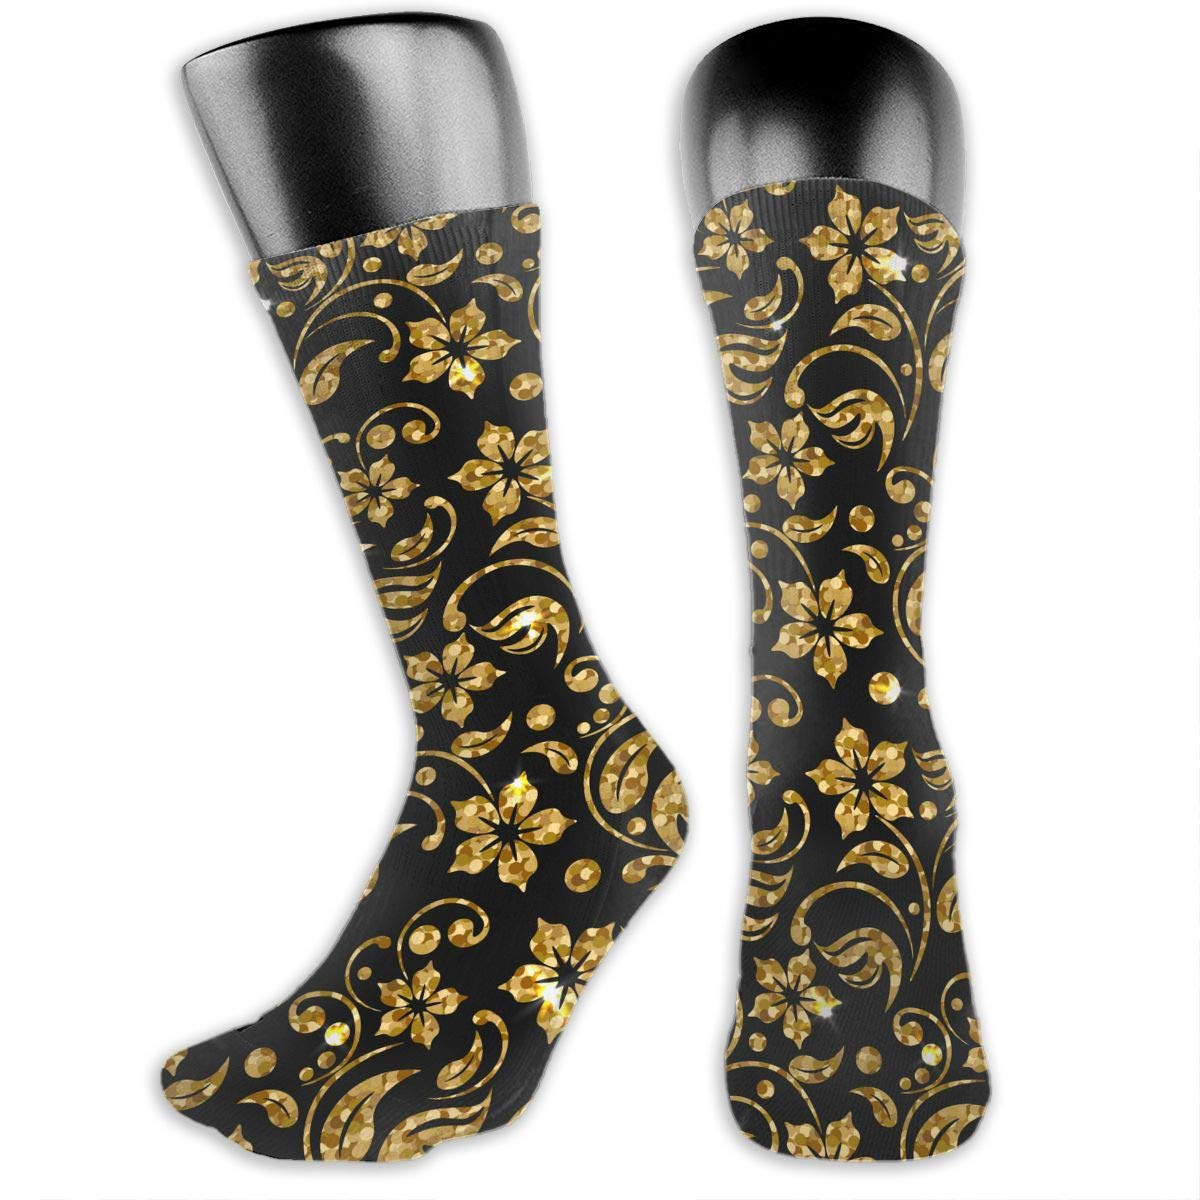 Gold Floral Men Womens Thin High Ankle Casual Socks Fit Outdoor Hiking Trail OLGCZM Pattern with Flowers Golden Glitter Pattern Design